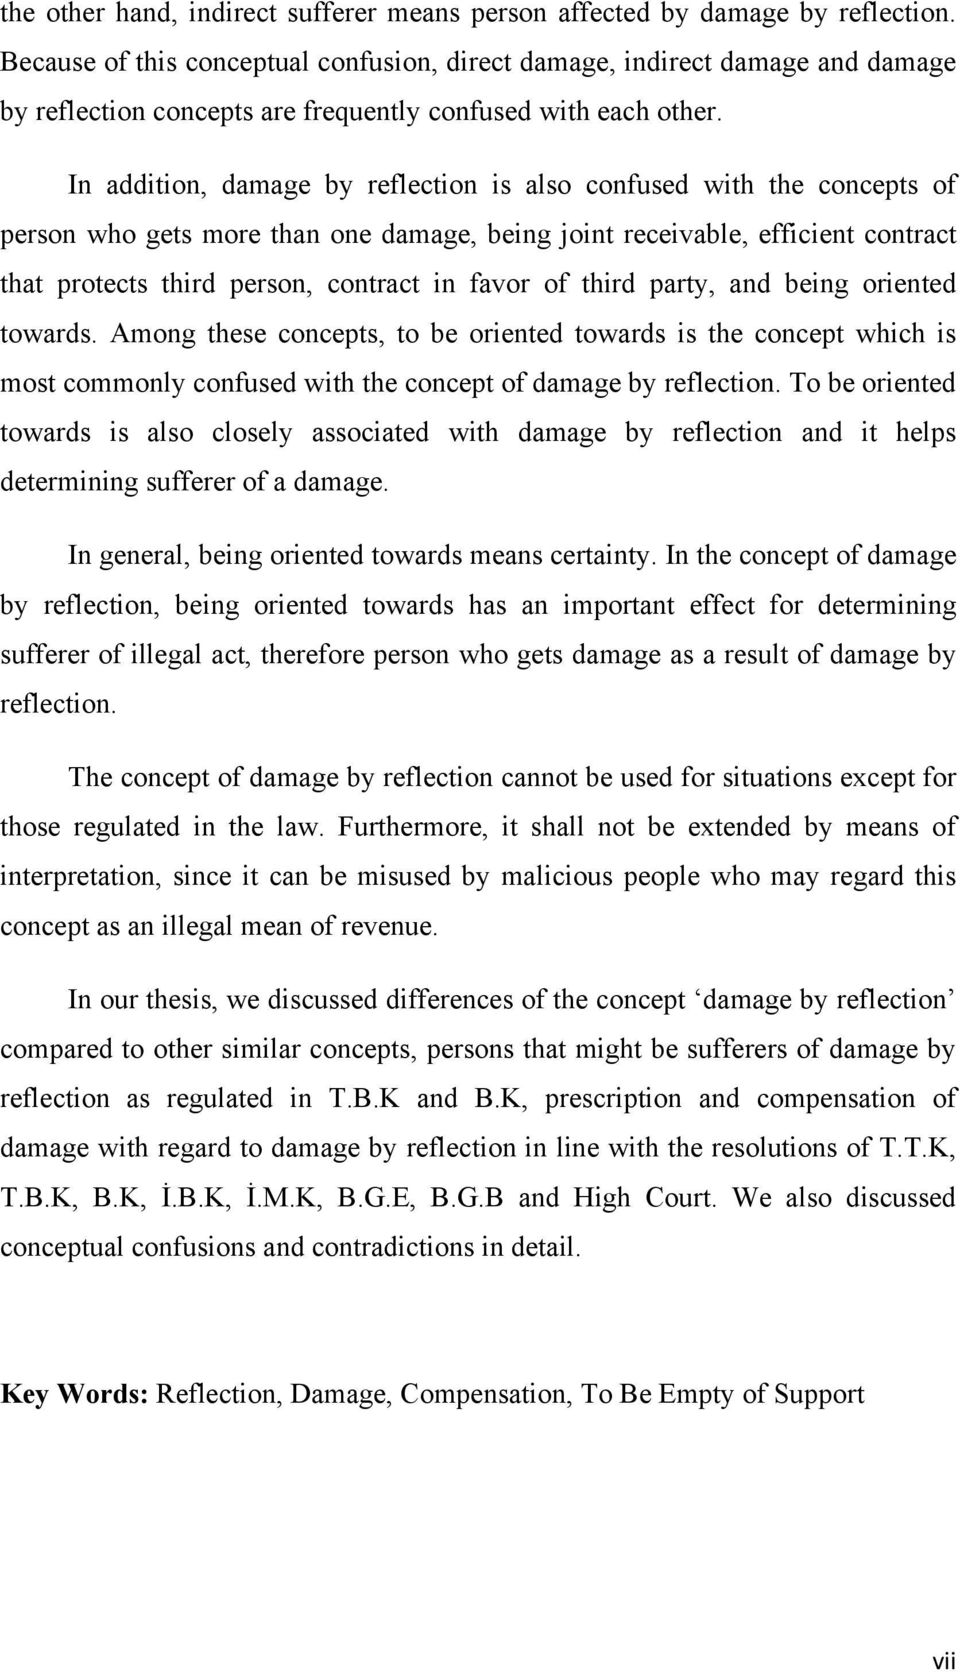 In addition, damage by reflection is also confused with the concepts of person who gets more than one damage, being joint receivable, efficient contract that protects third person, contract in favor